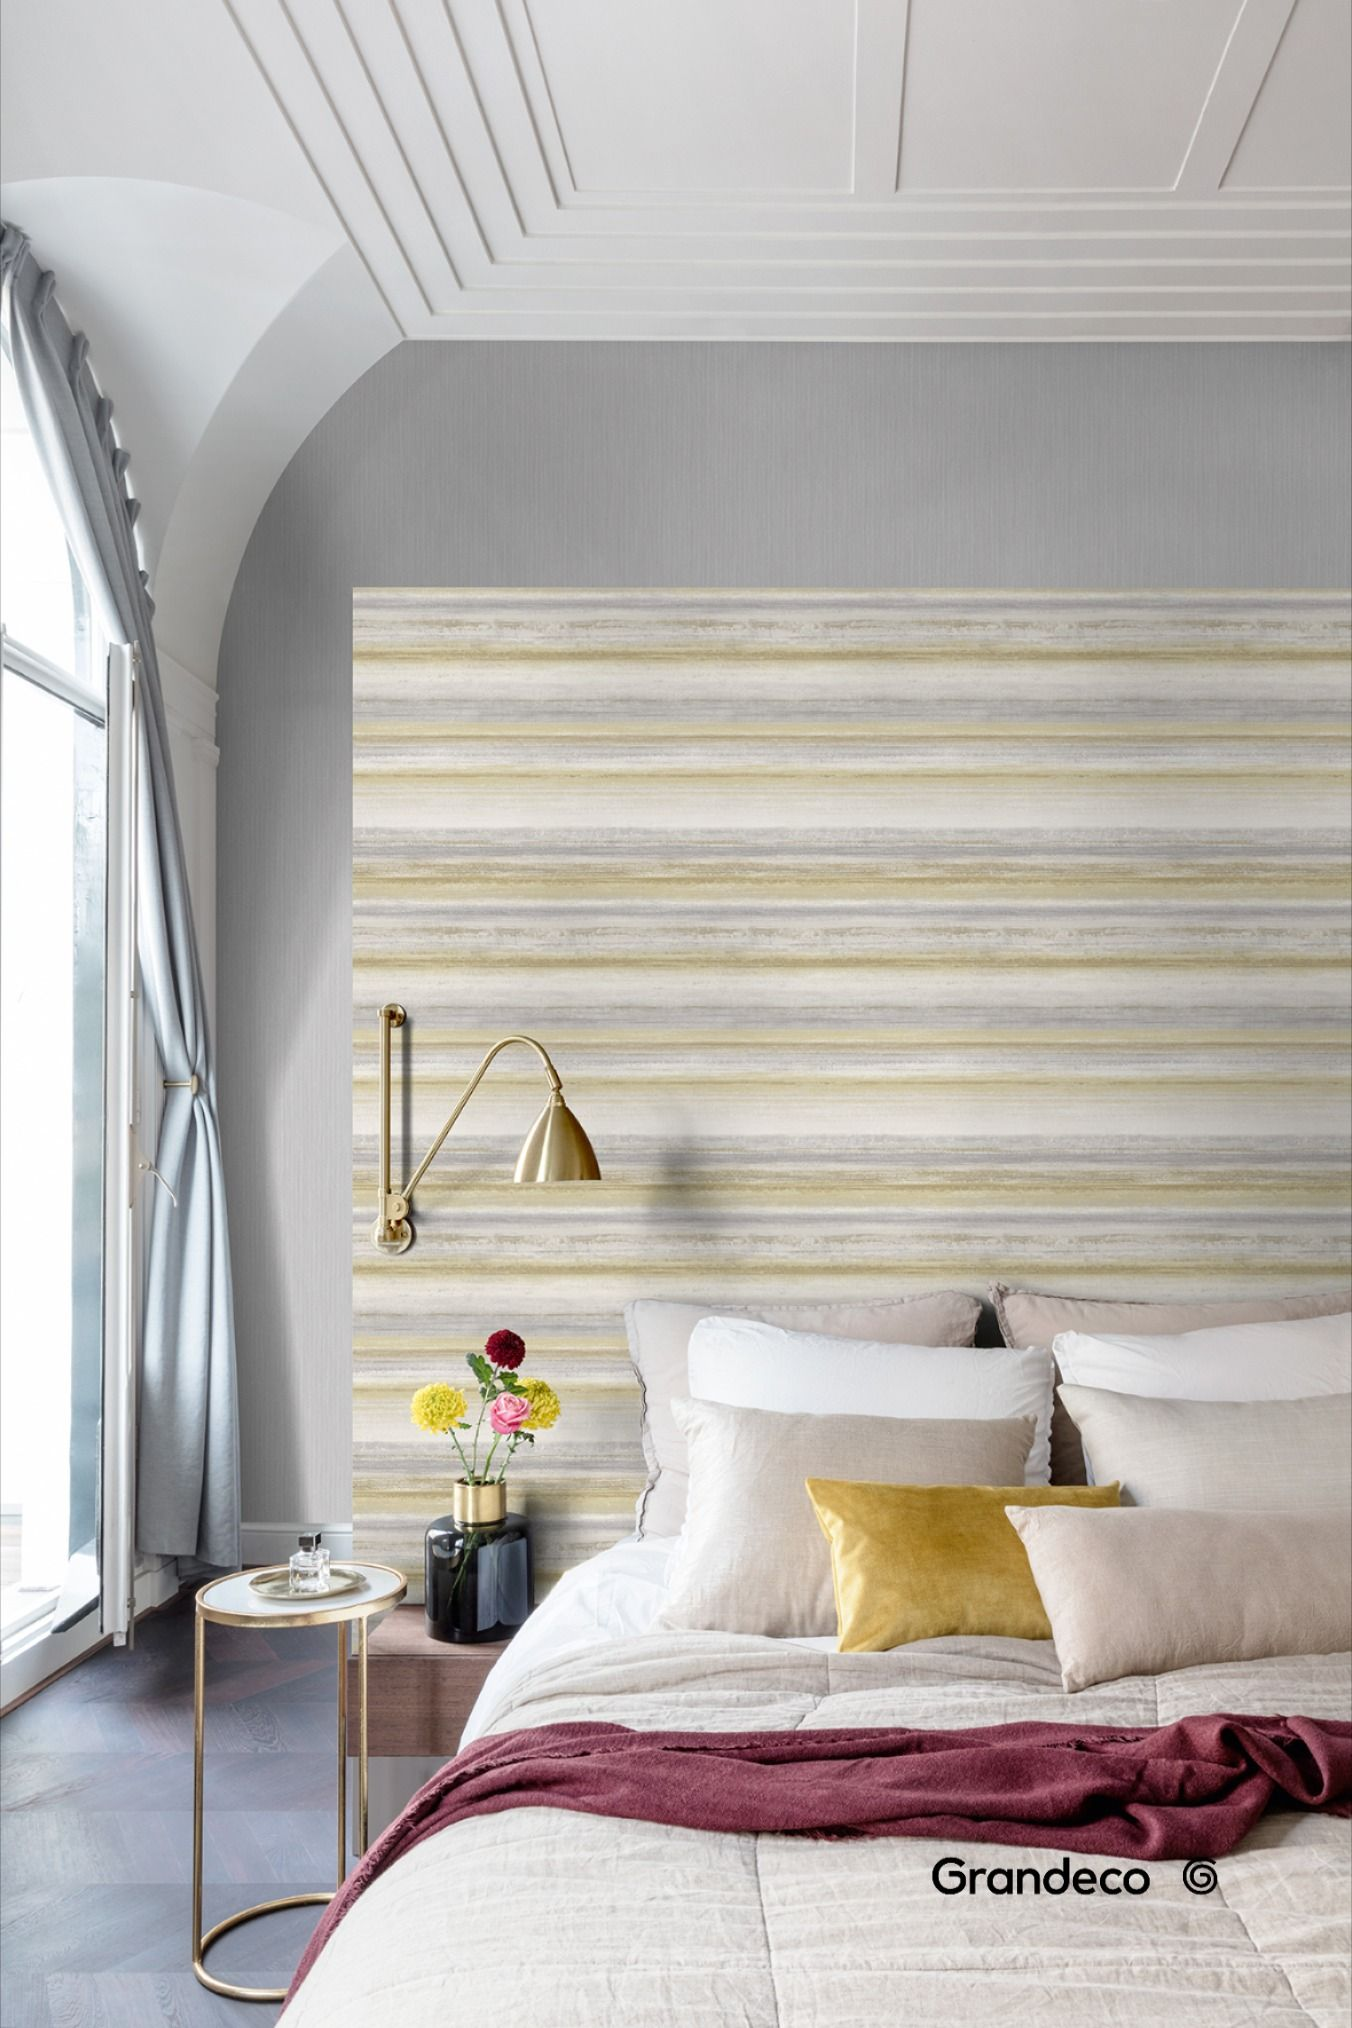 The Muze Wallpaper is a soft textured horizontal painted